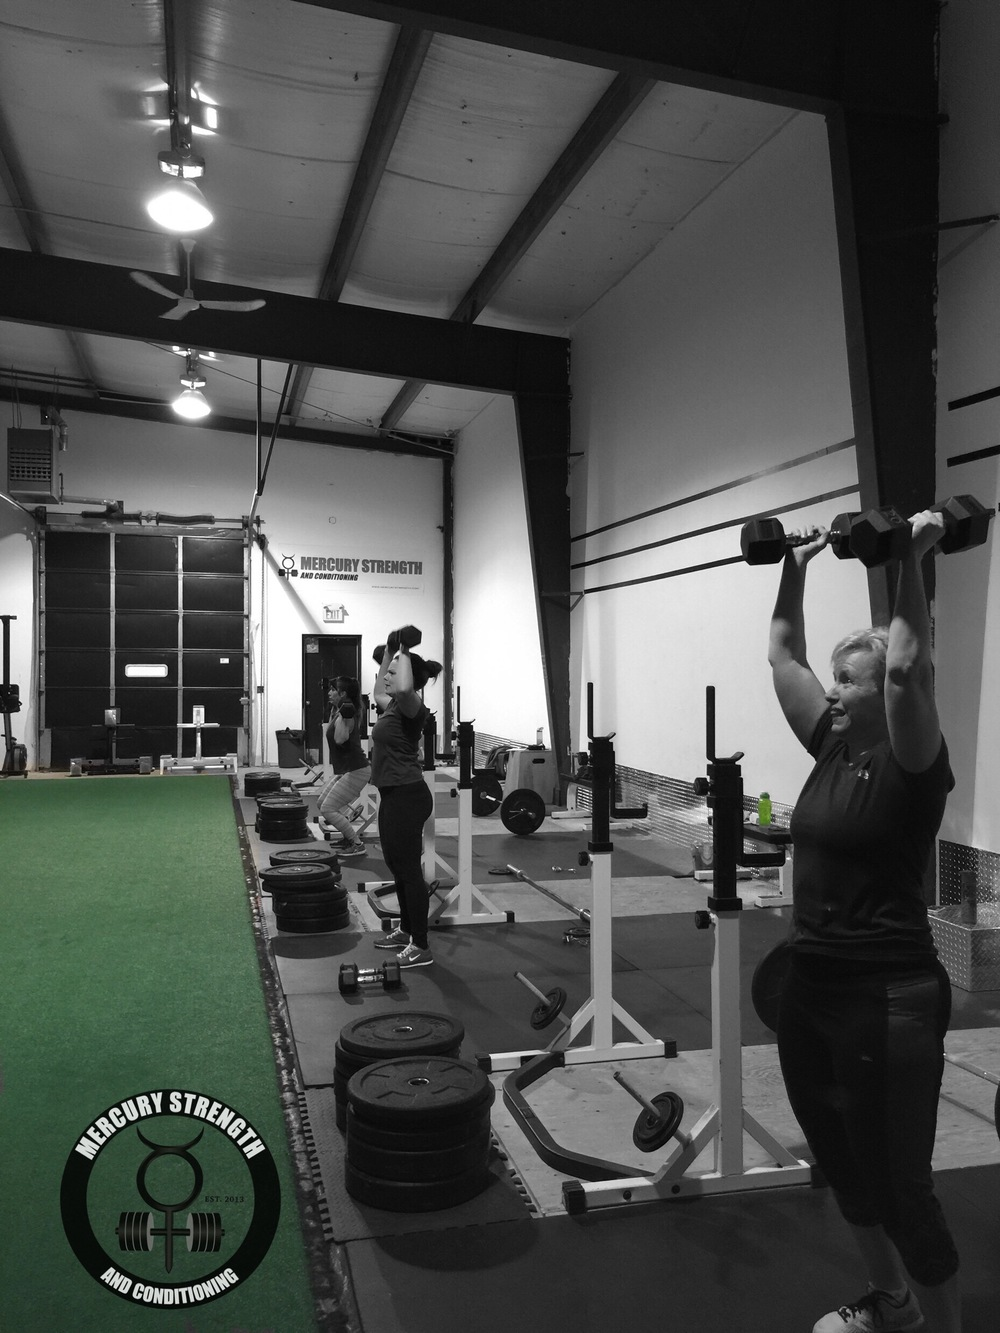 Teresa, Michelle, and Amelia cranking out some DB push presses.